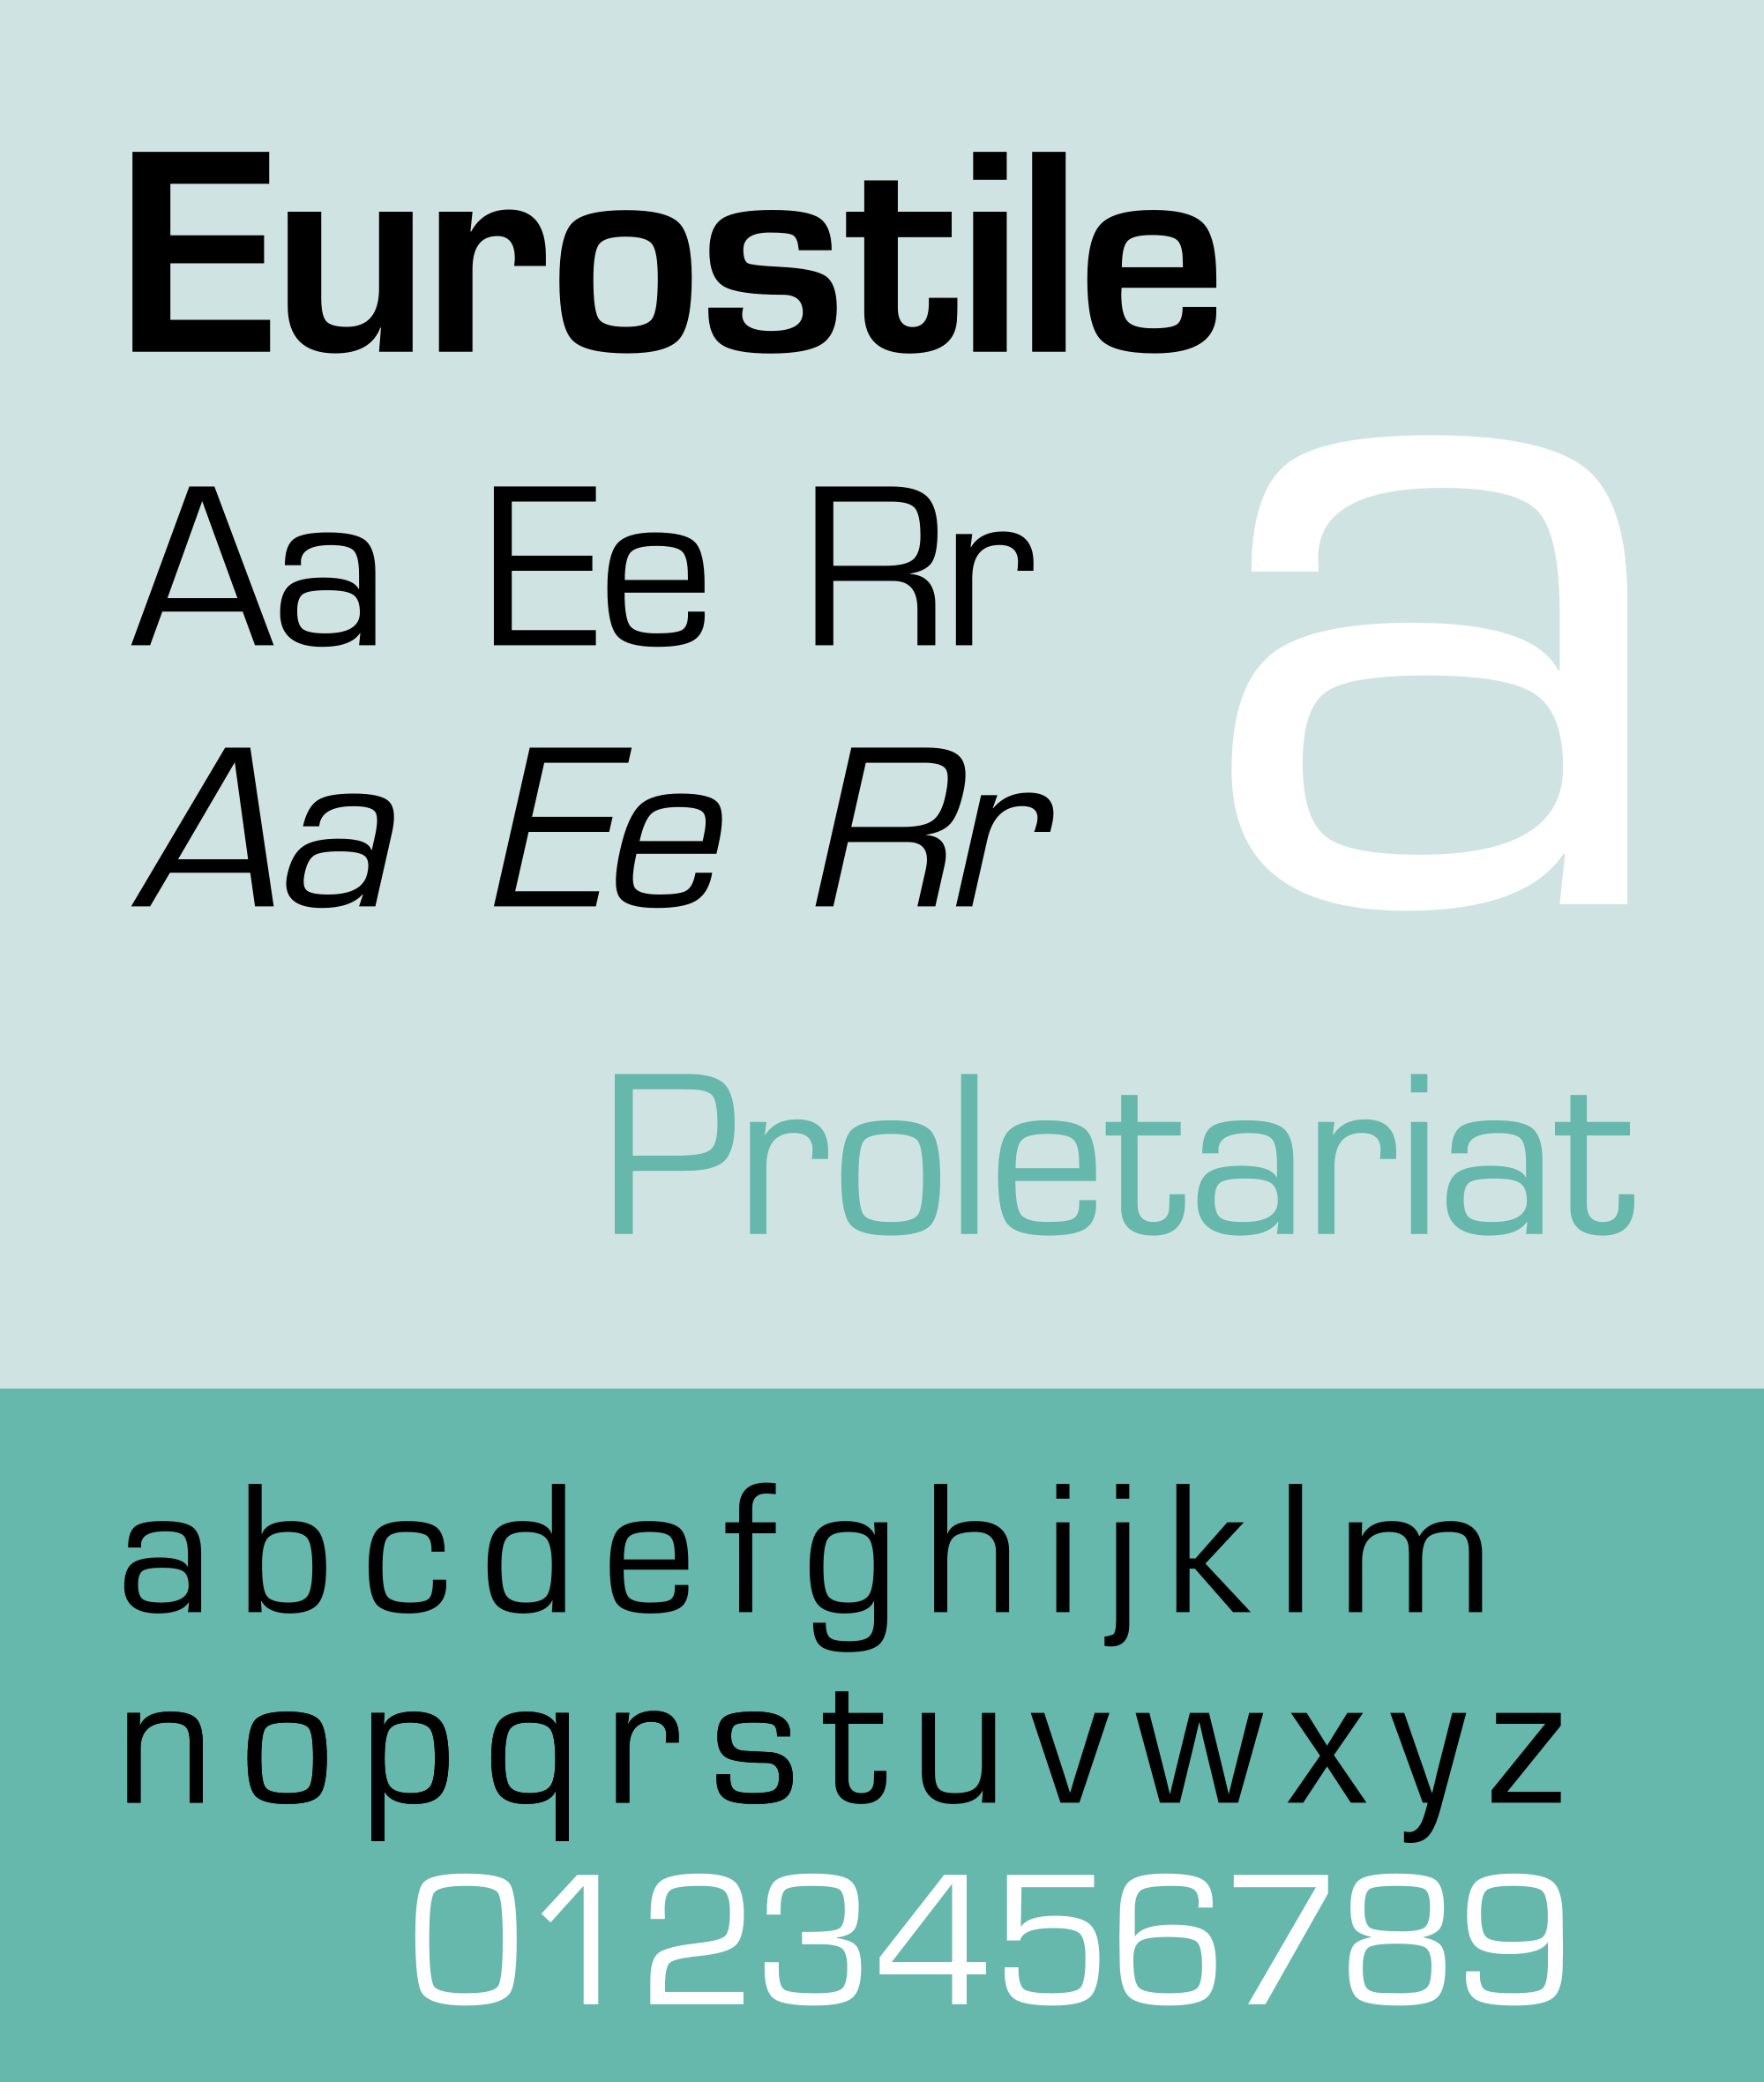 25 most used typefaces in advertising: Eurostile